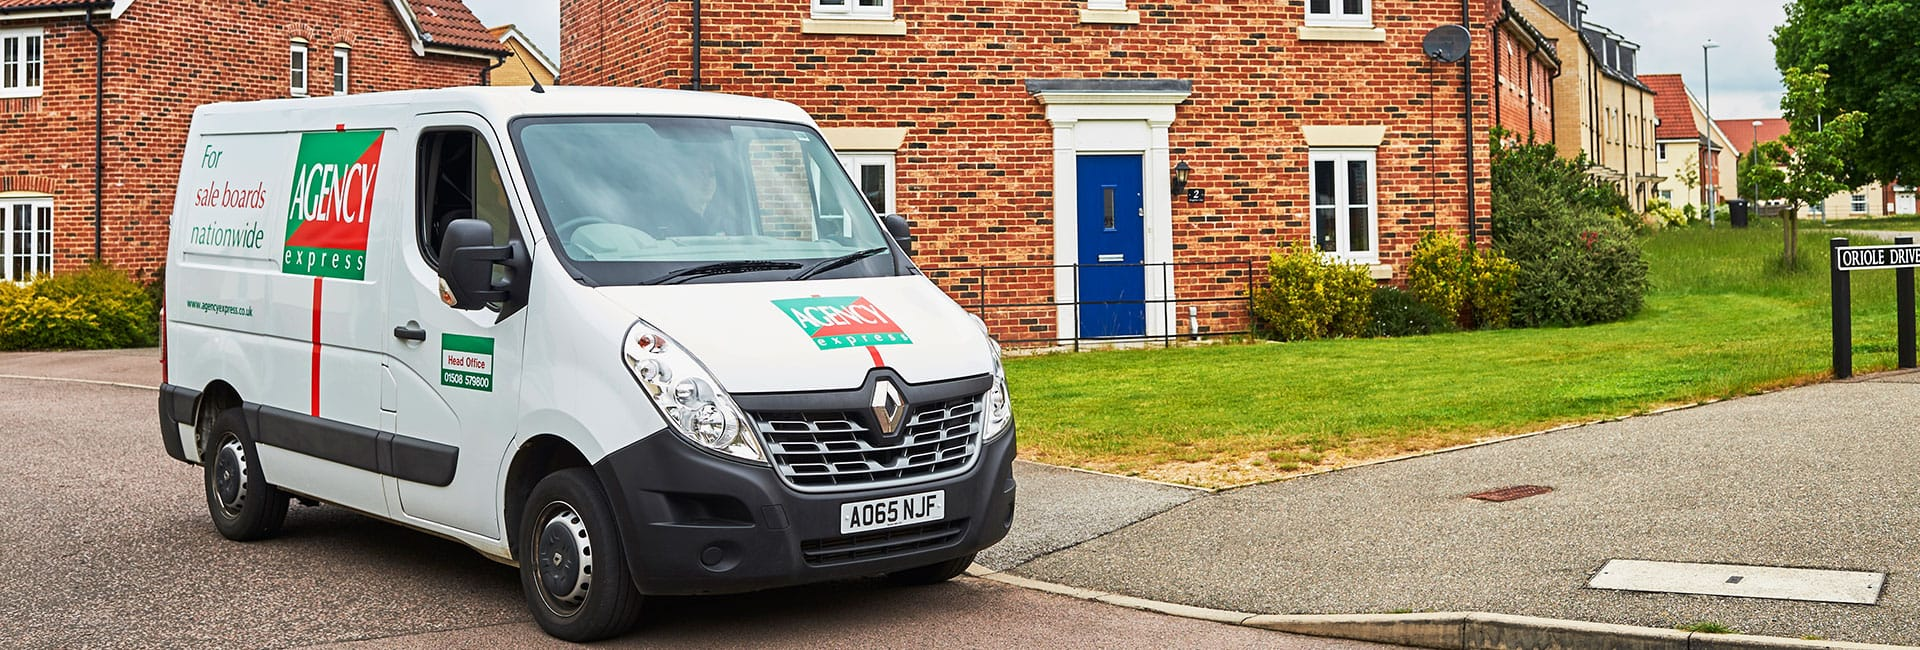 Agency Express van outside a house - Property activity